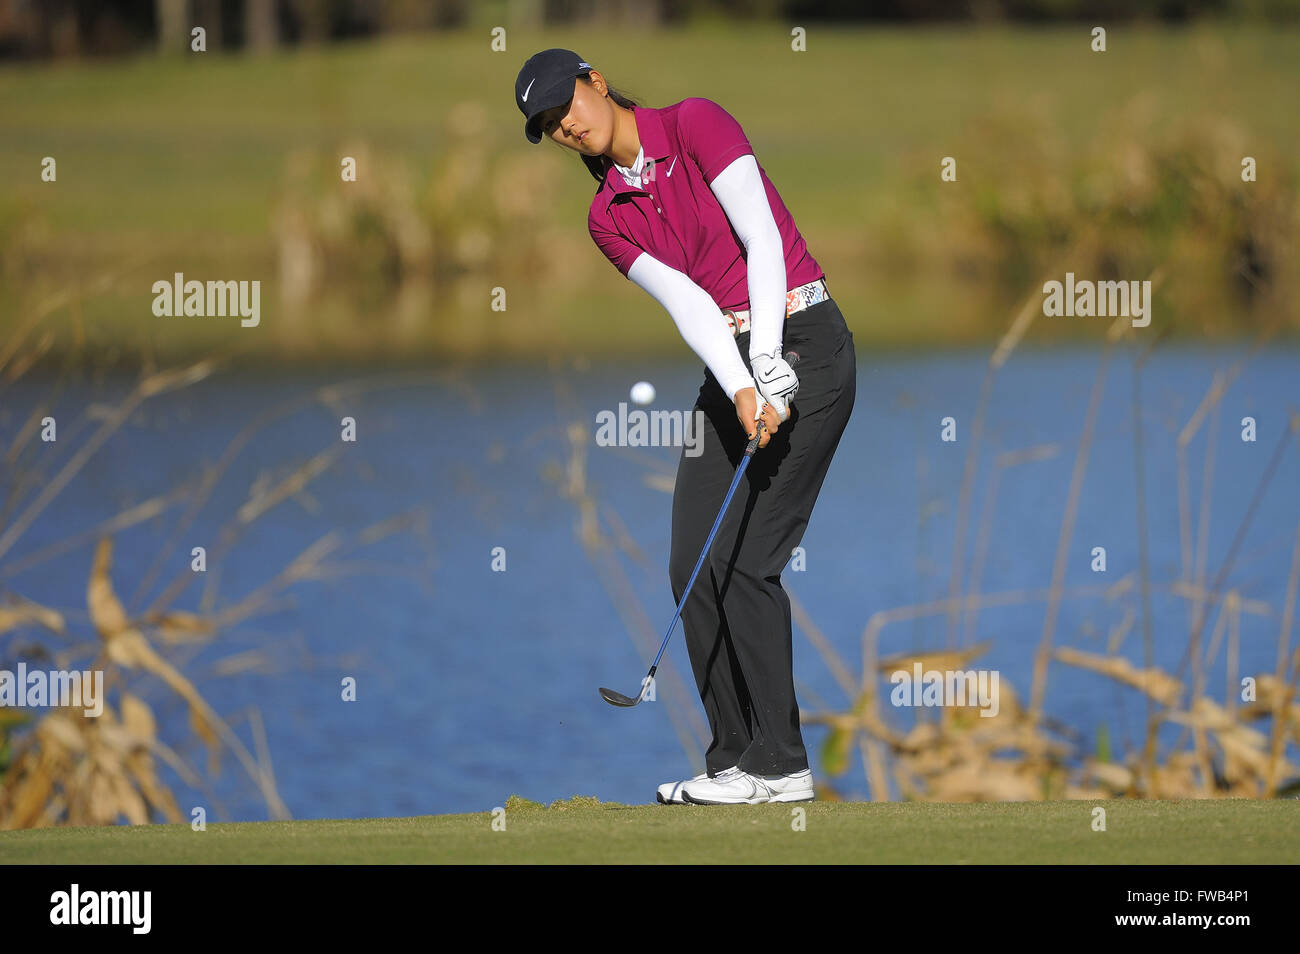 December 7, 2008 - Daytona Beach, Florida, UNITED STATES - Michelle Wie during the final round of LPGA Qualifying - Stock Image